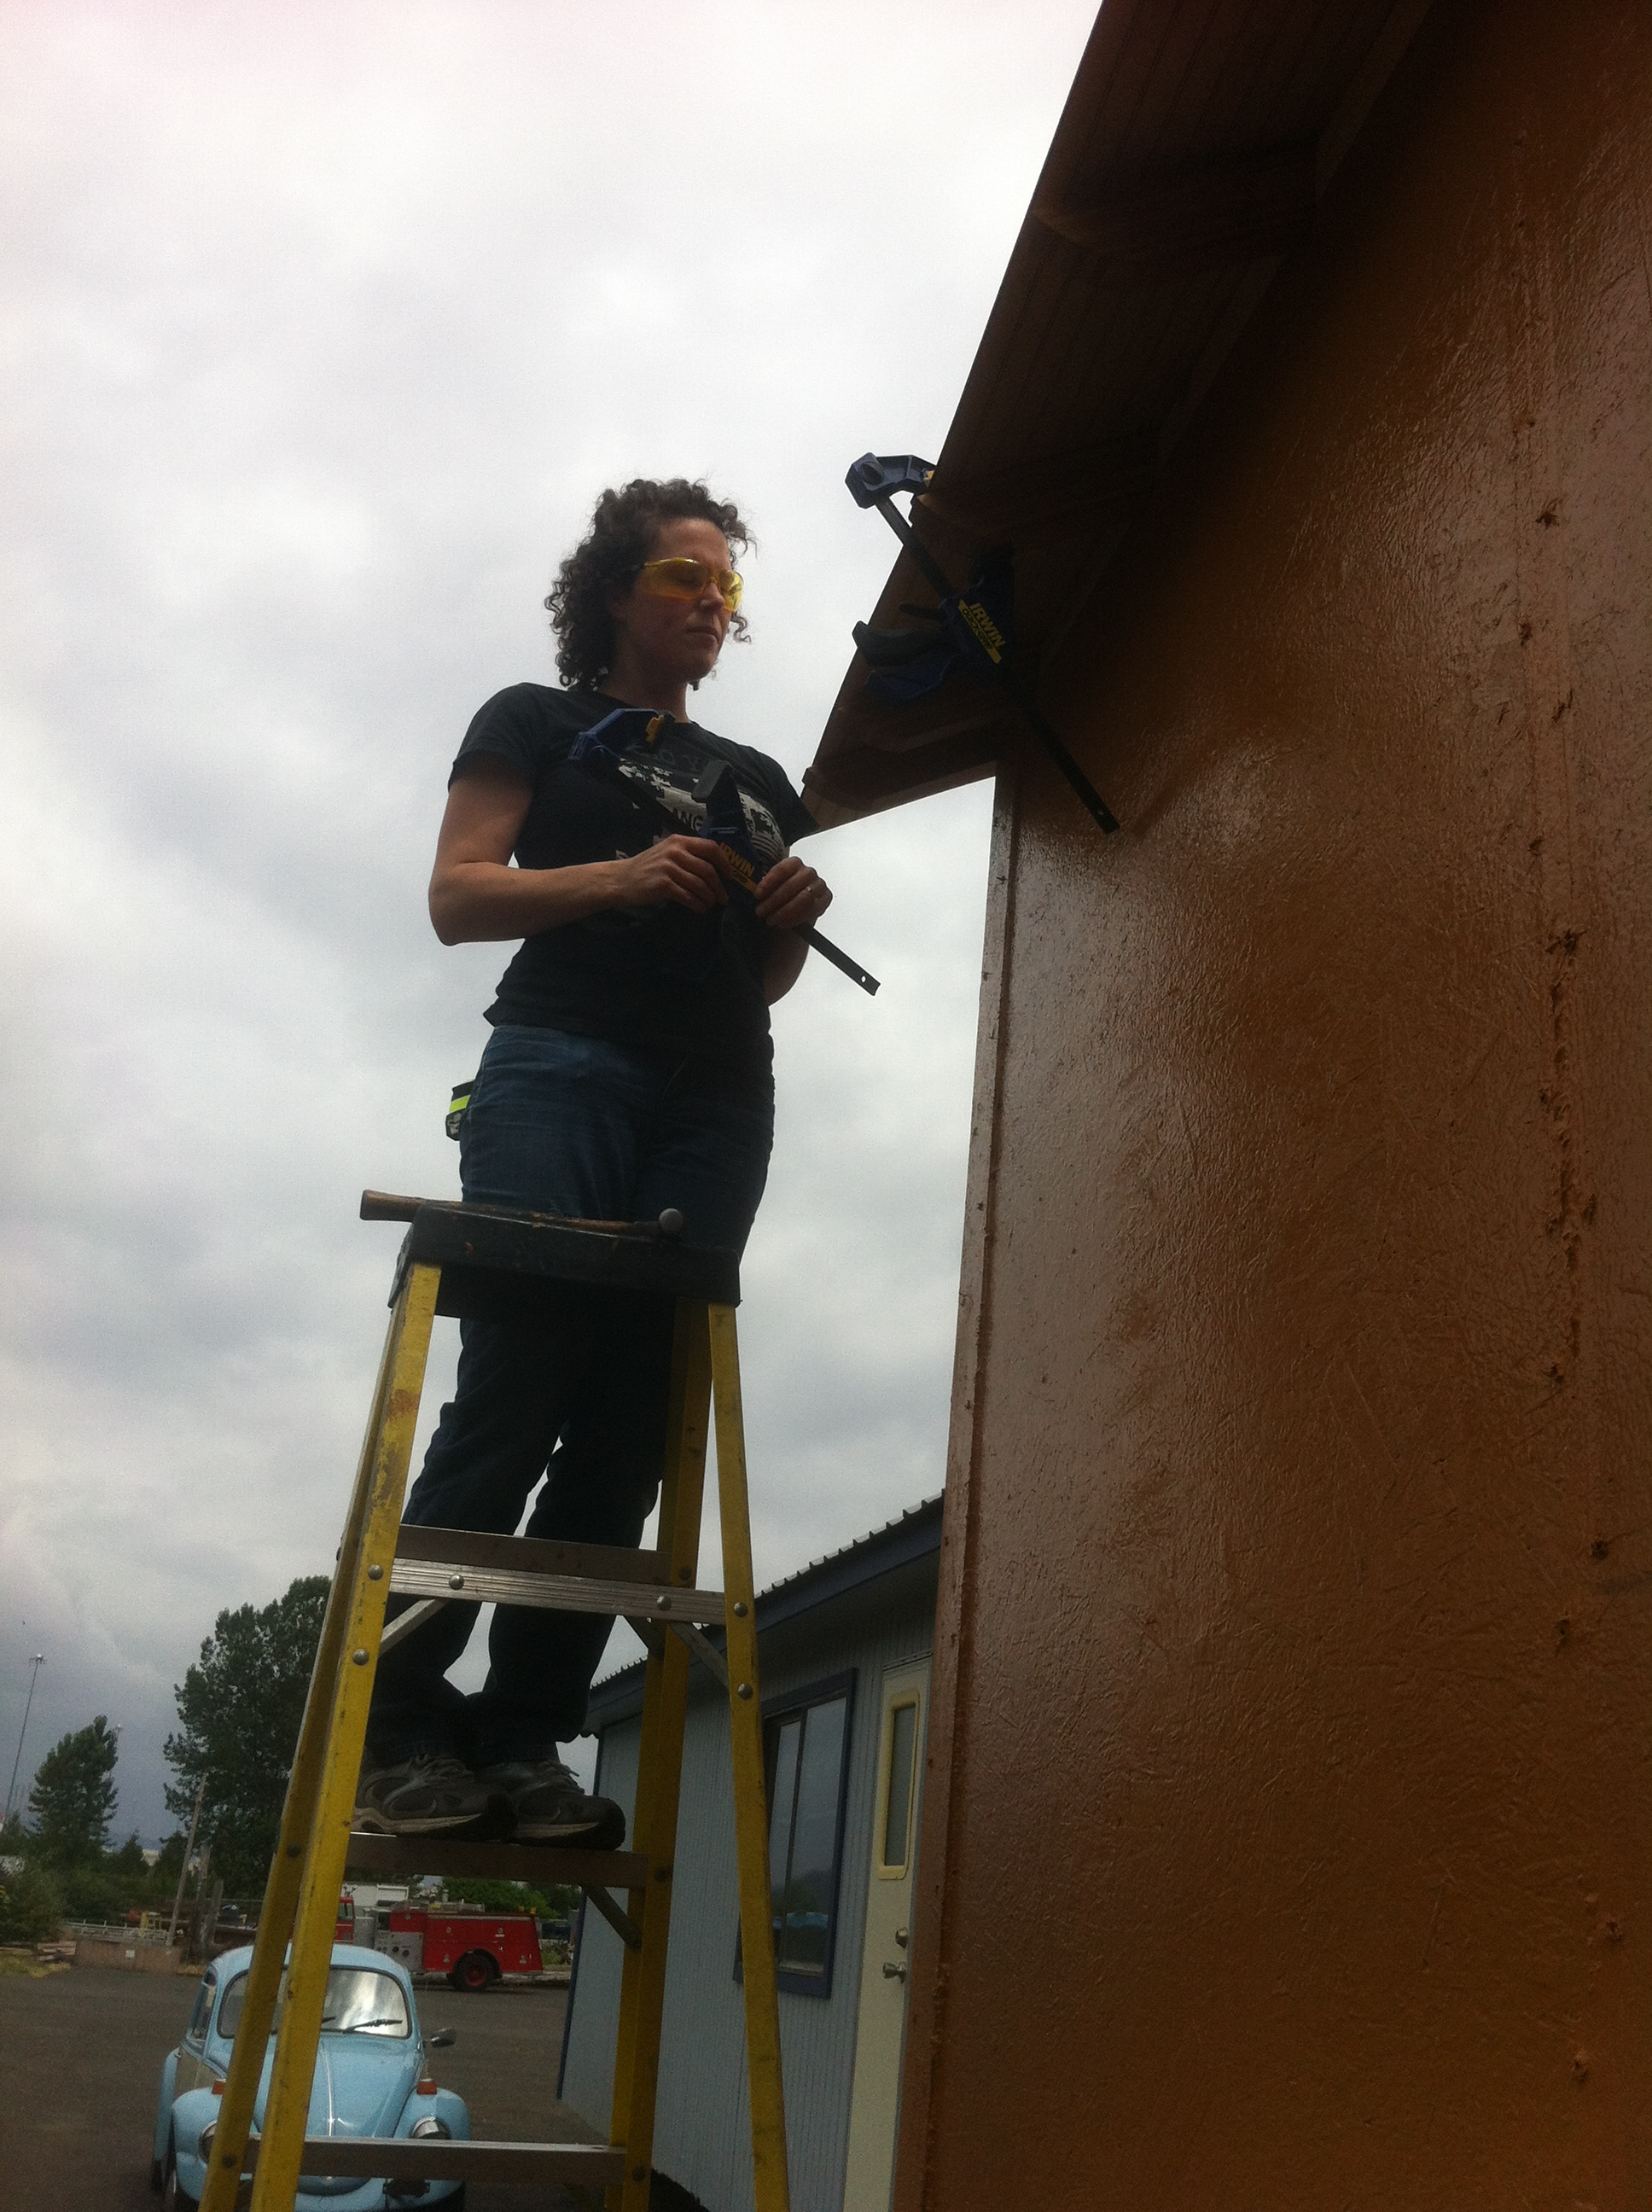 Natalie-Clamping-Roof-Panels.jpg